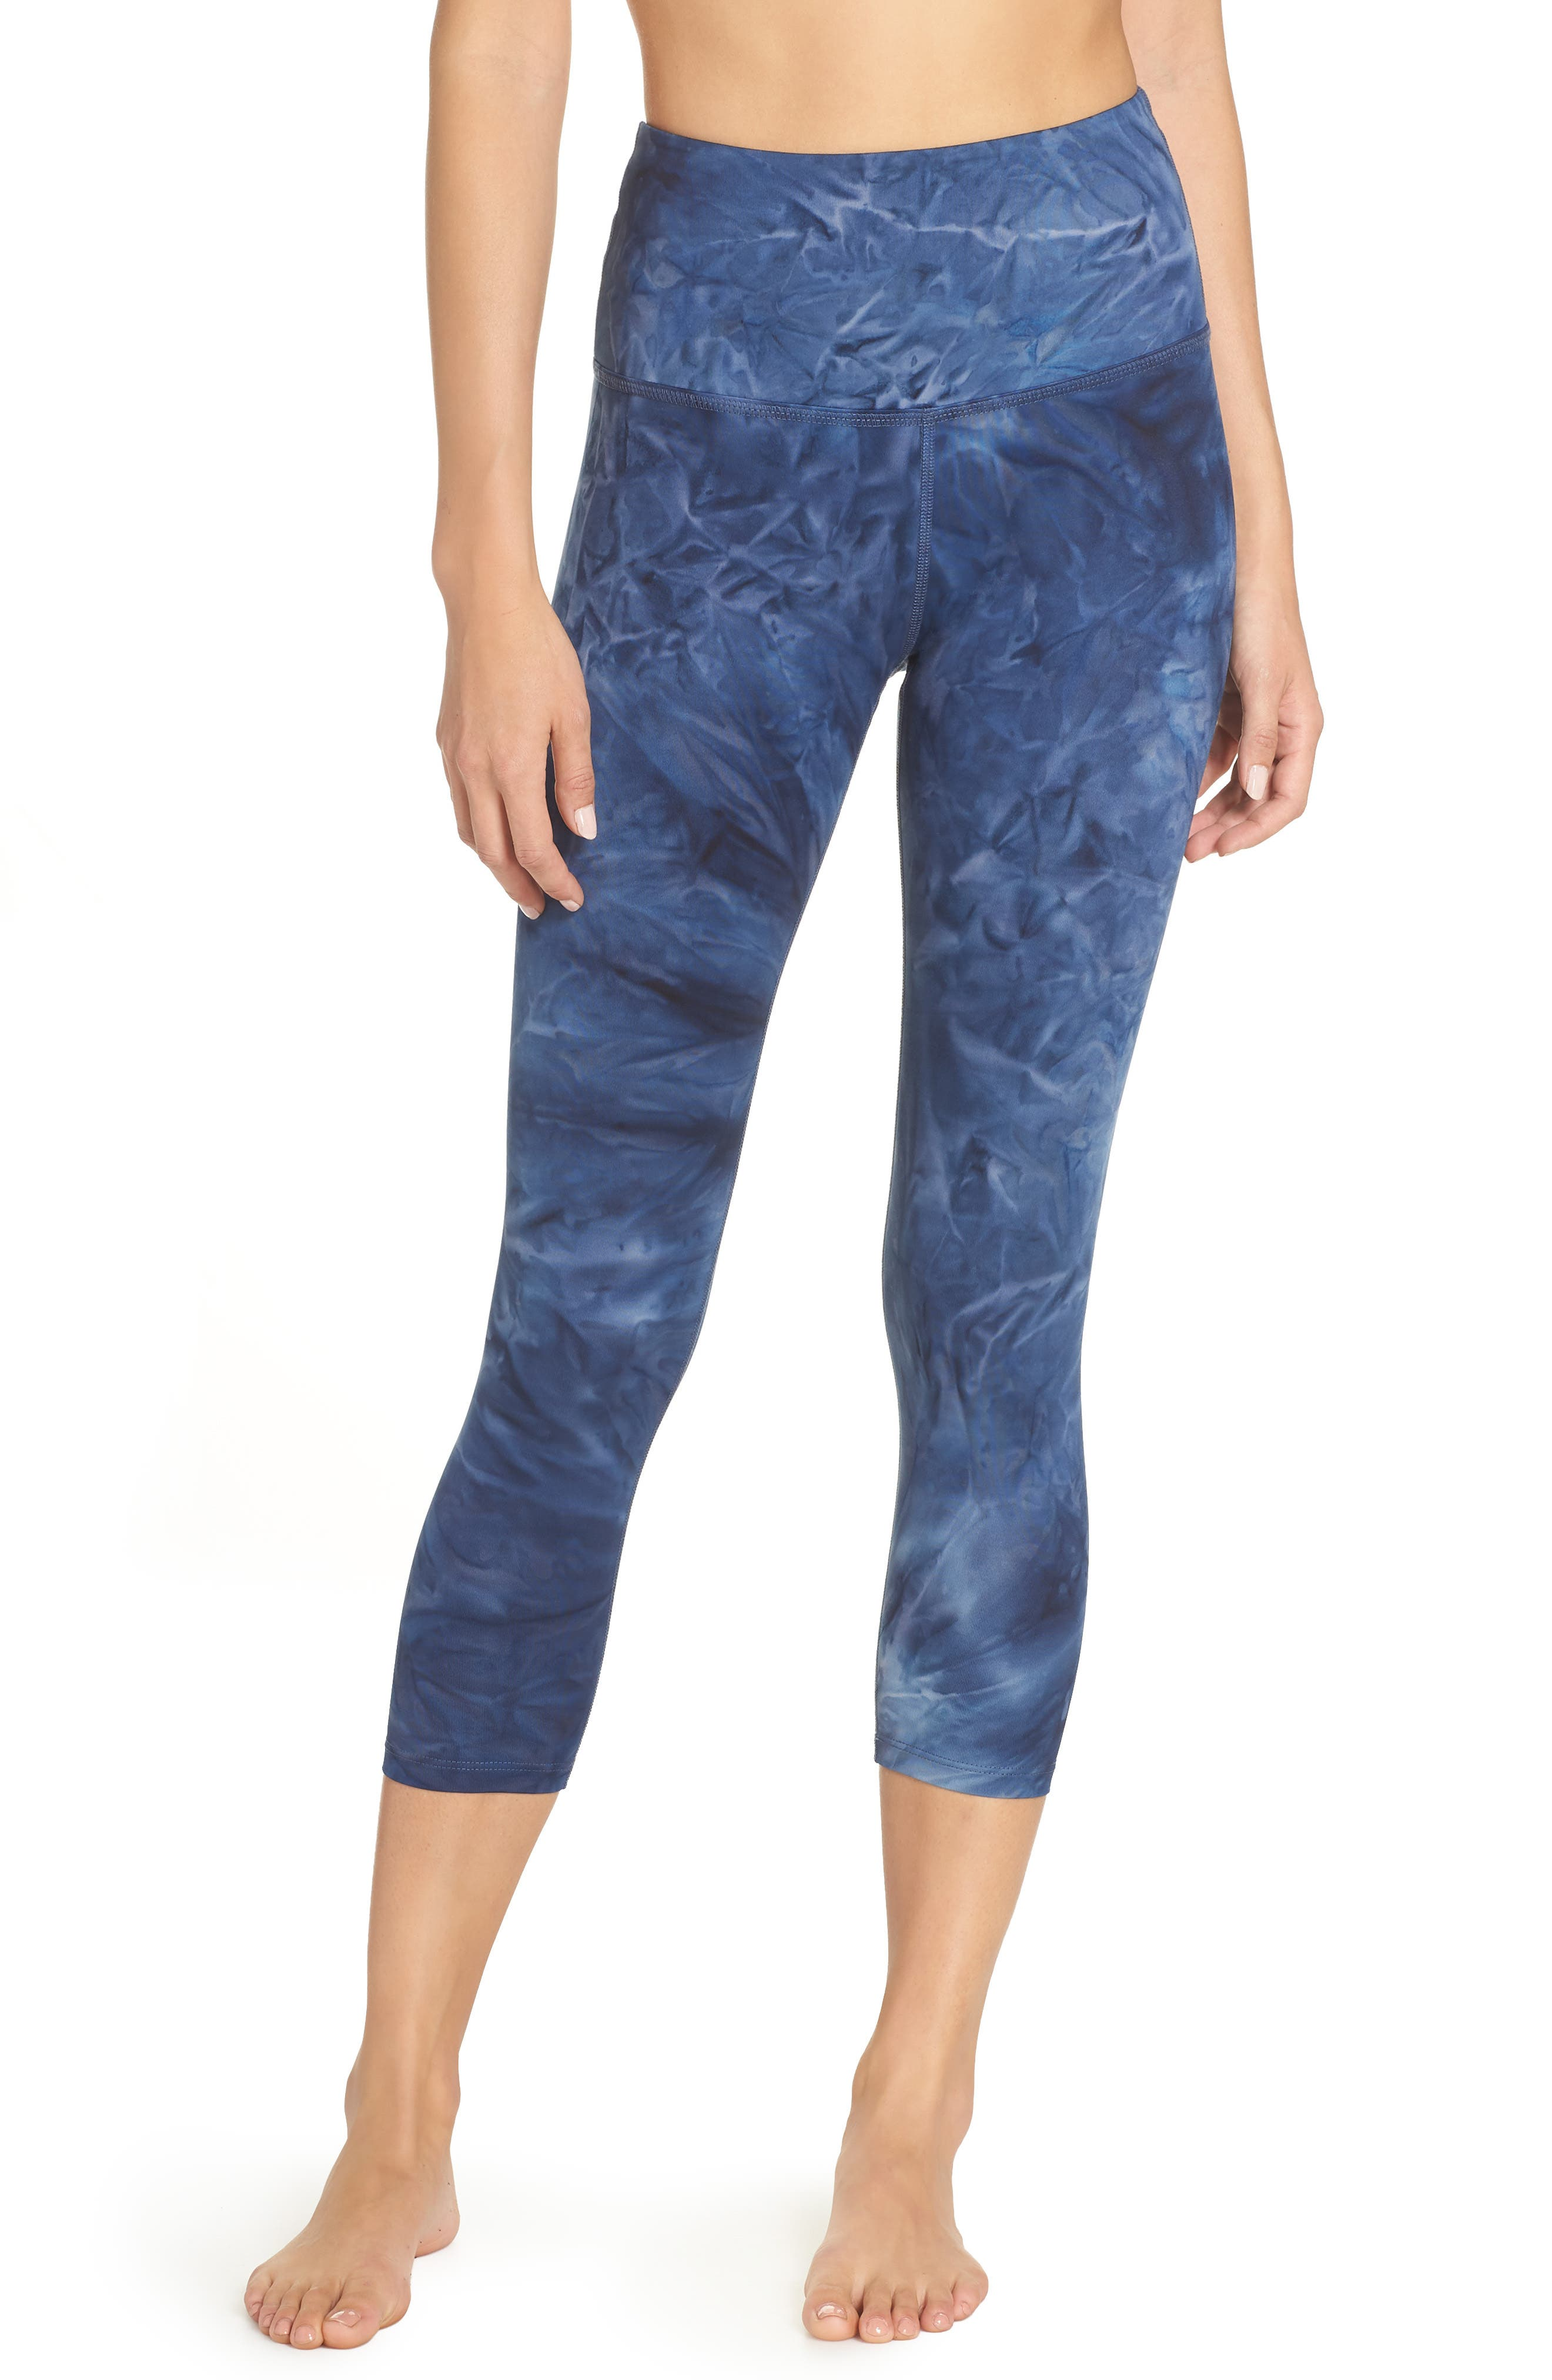 Smokeshow High Waist Leggings,                             Main thumbnail 1, color,                             461